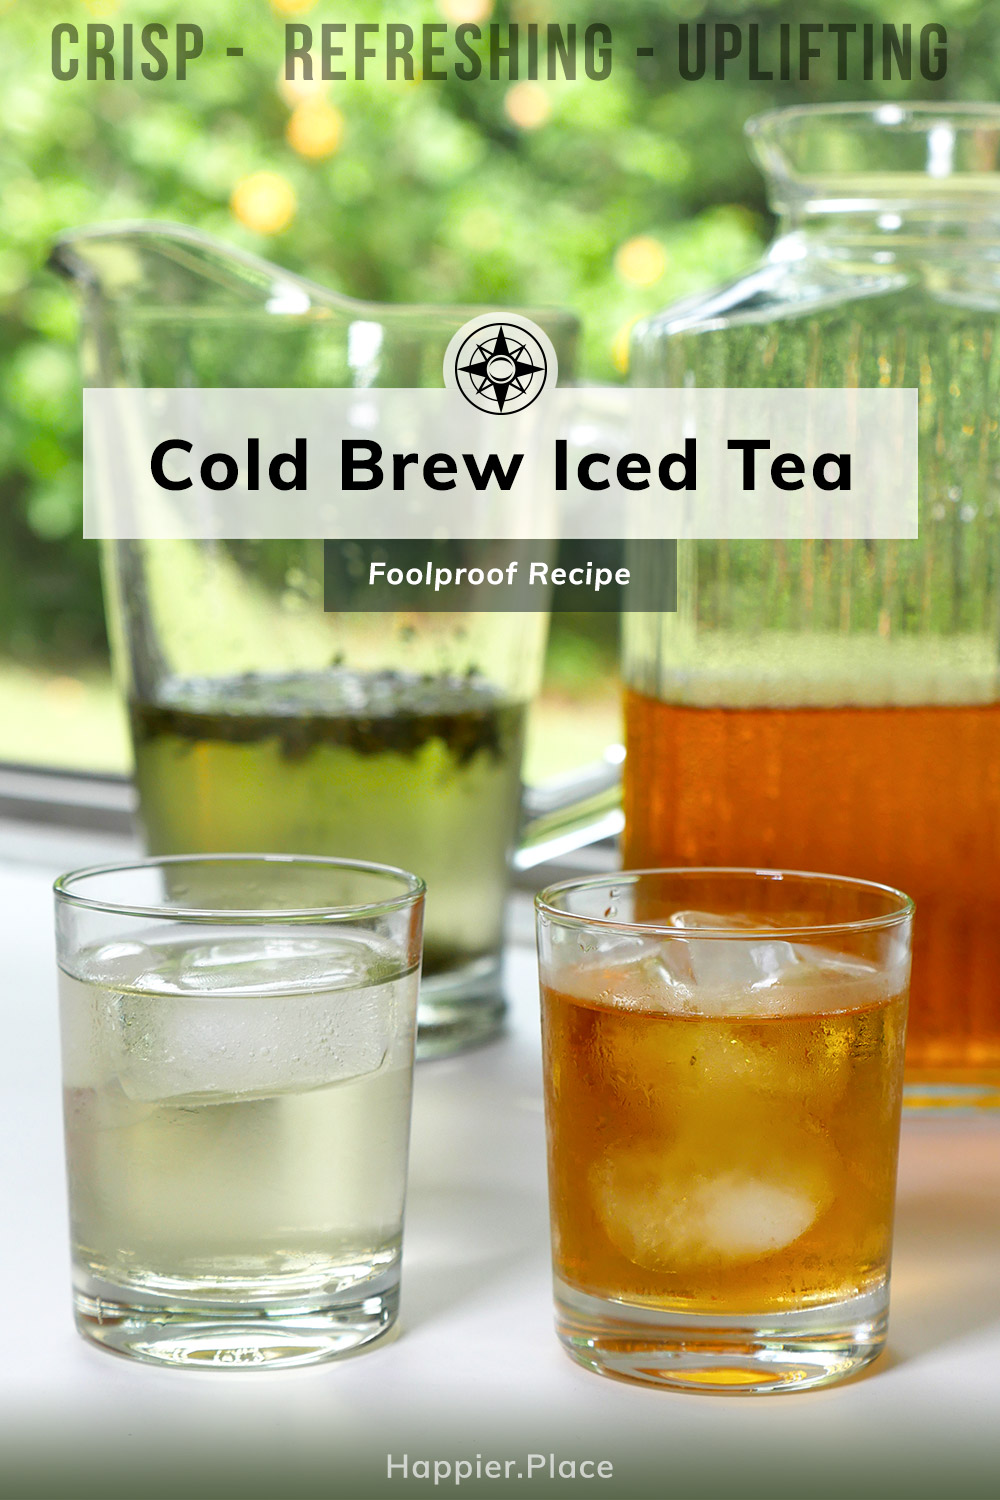 Crisp, Refreshing, and Uplifting: Foolproof Cold Brew Iced Tea Recipe